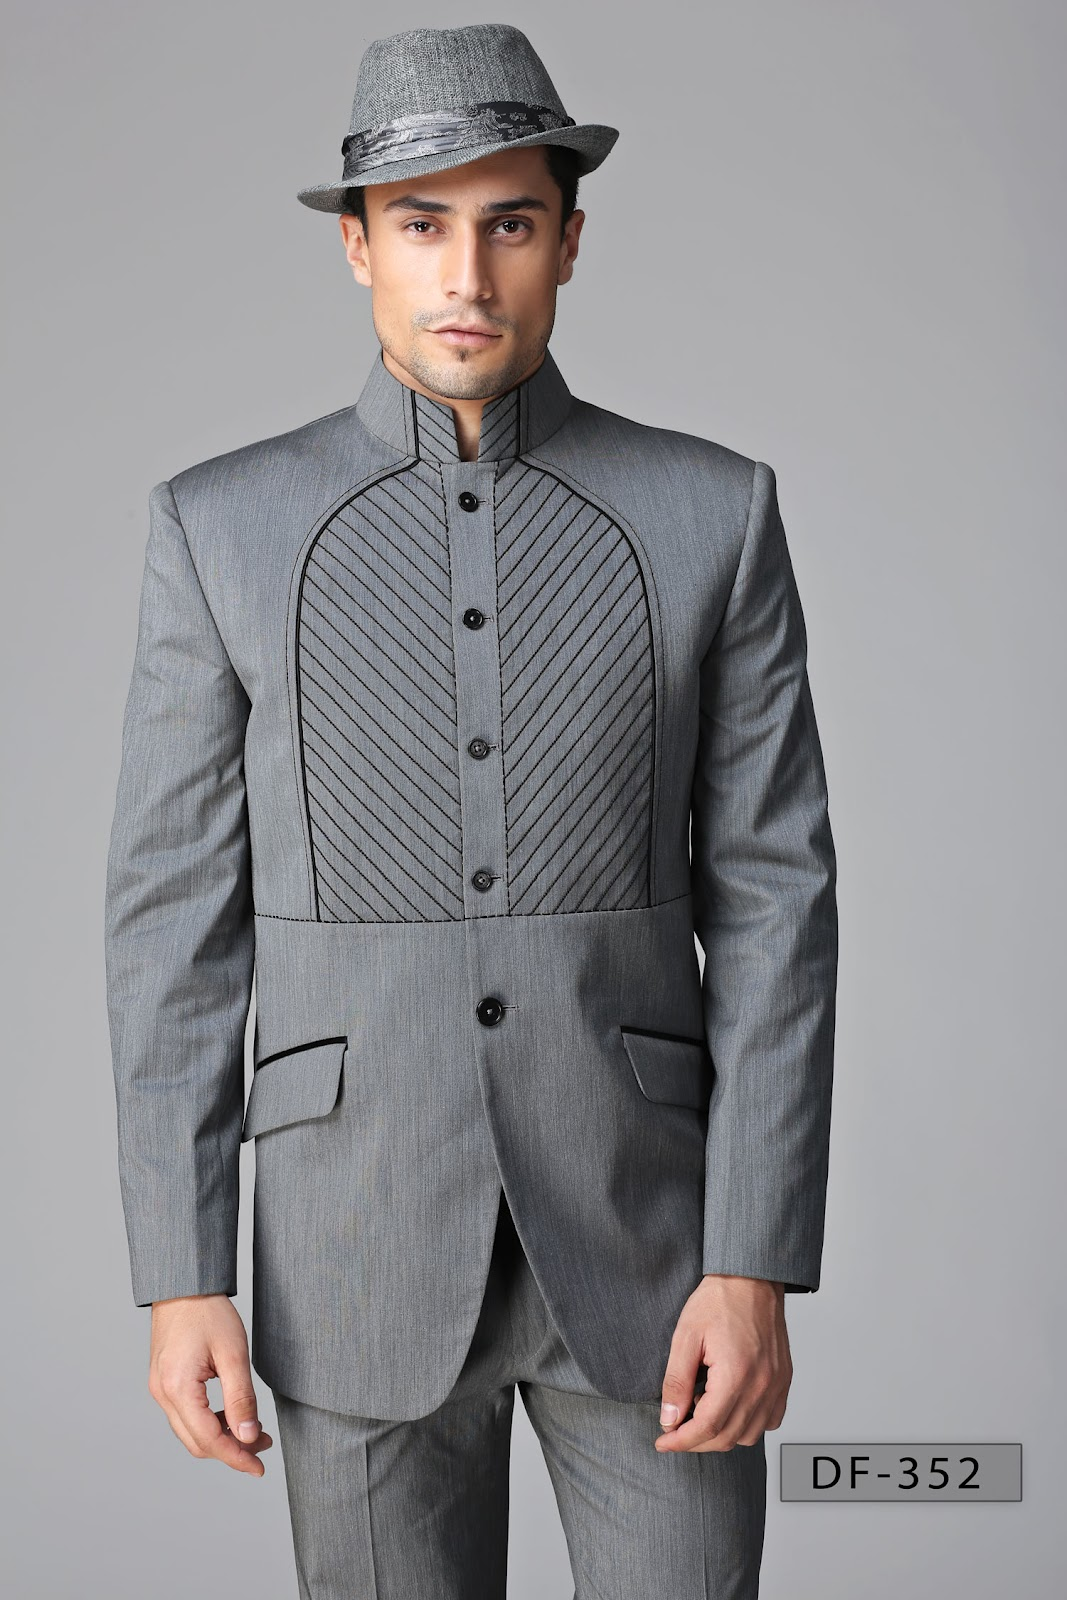 Shopping online for discount 3 Piece suits on sale is a no brainer because 24software.ml is the online store that sells inexpensive 3 piece suits with free shipping over $ A 3 Piece Suit is so much more than an added vest.